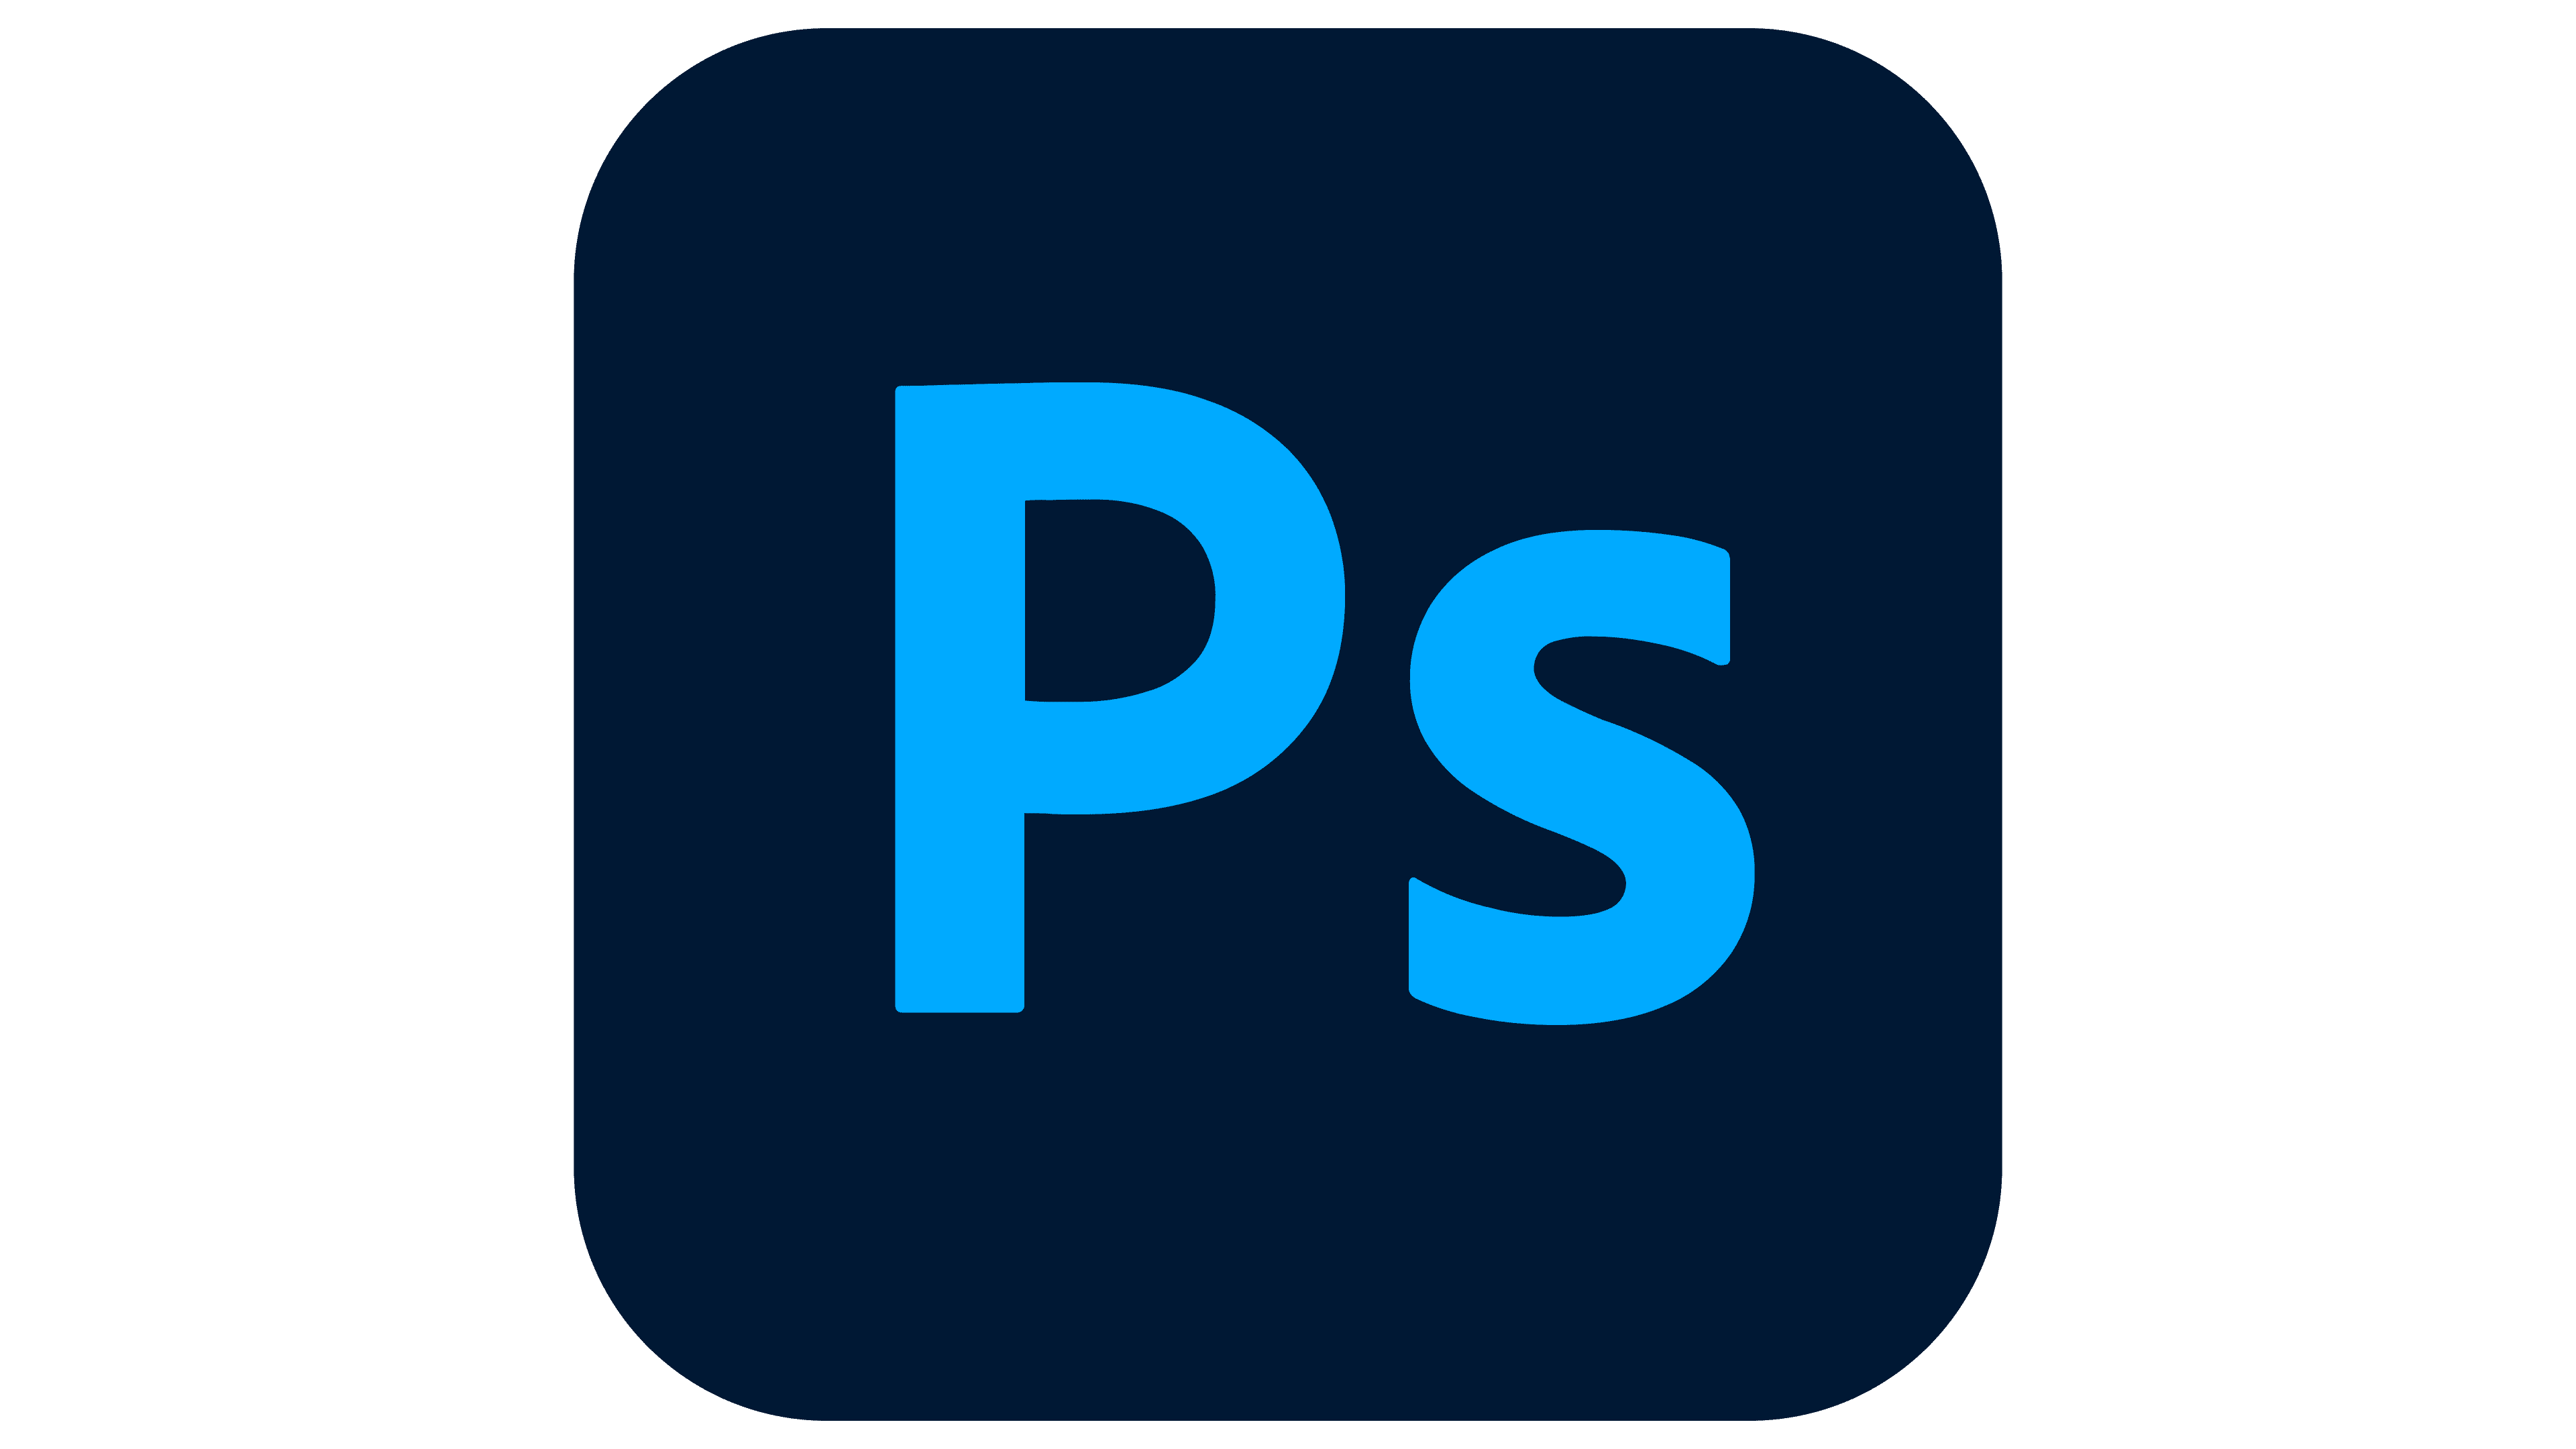 Photoshop Logo   The most famous brands and company logos in the world